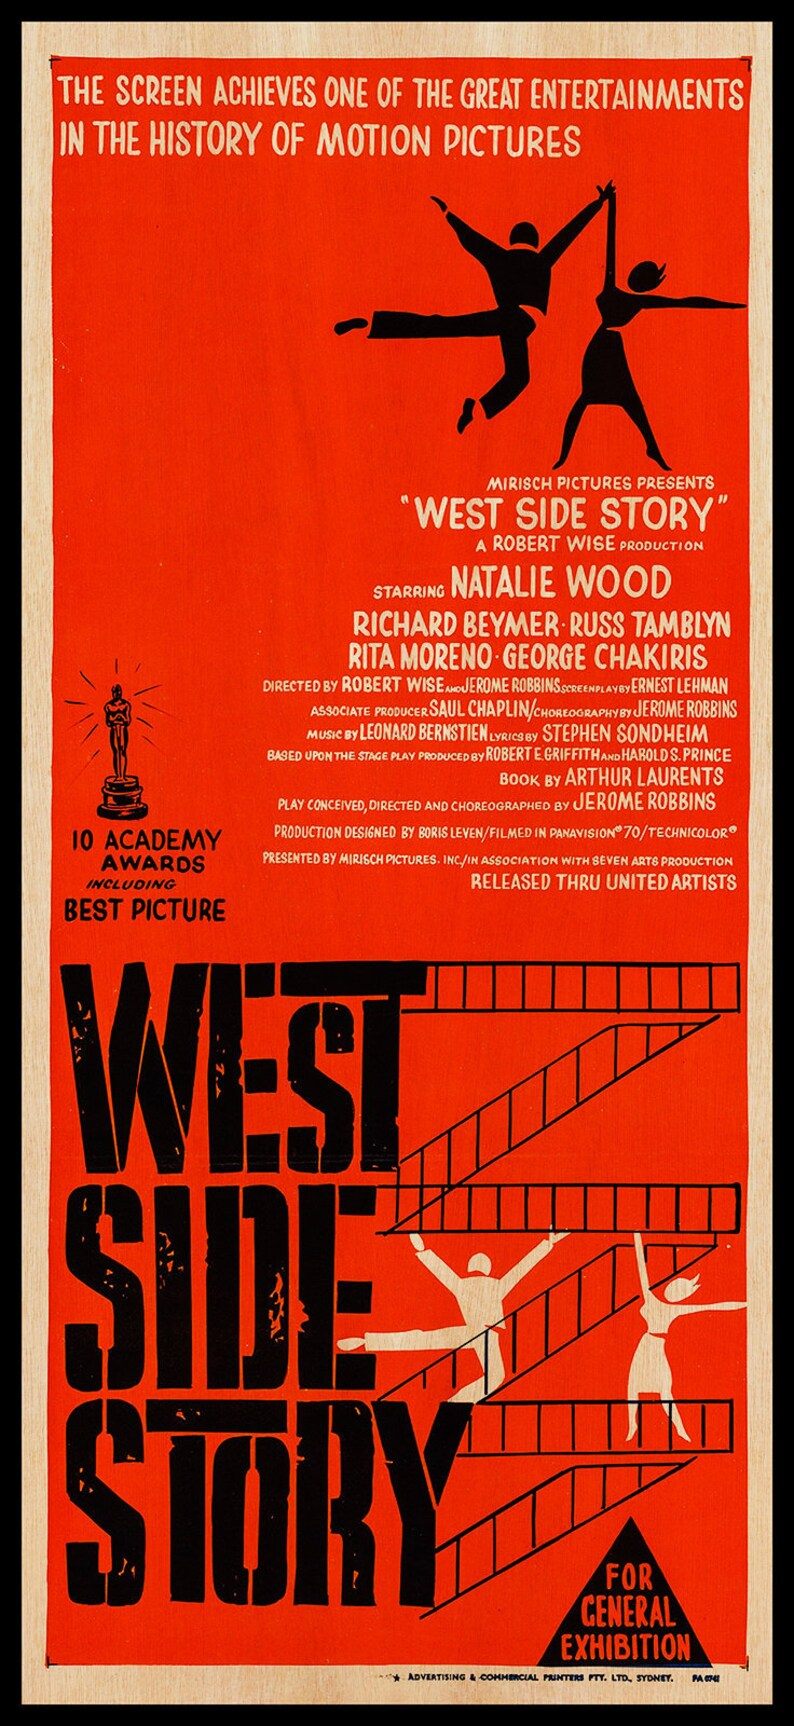 West Side Story WOOD PRINT Poster  Fanart Cinema Movie Posters on WOOD for  this movie lover  Extra large Wall Art Prints and Canvas Art